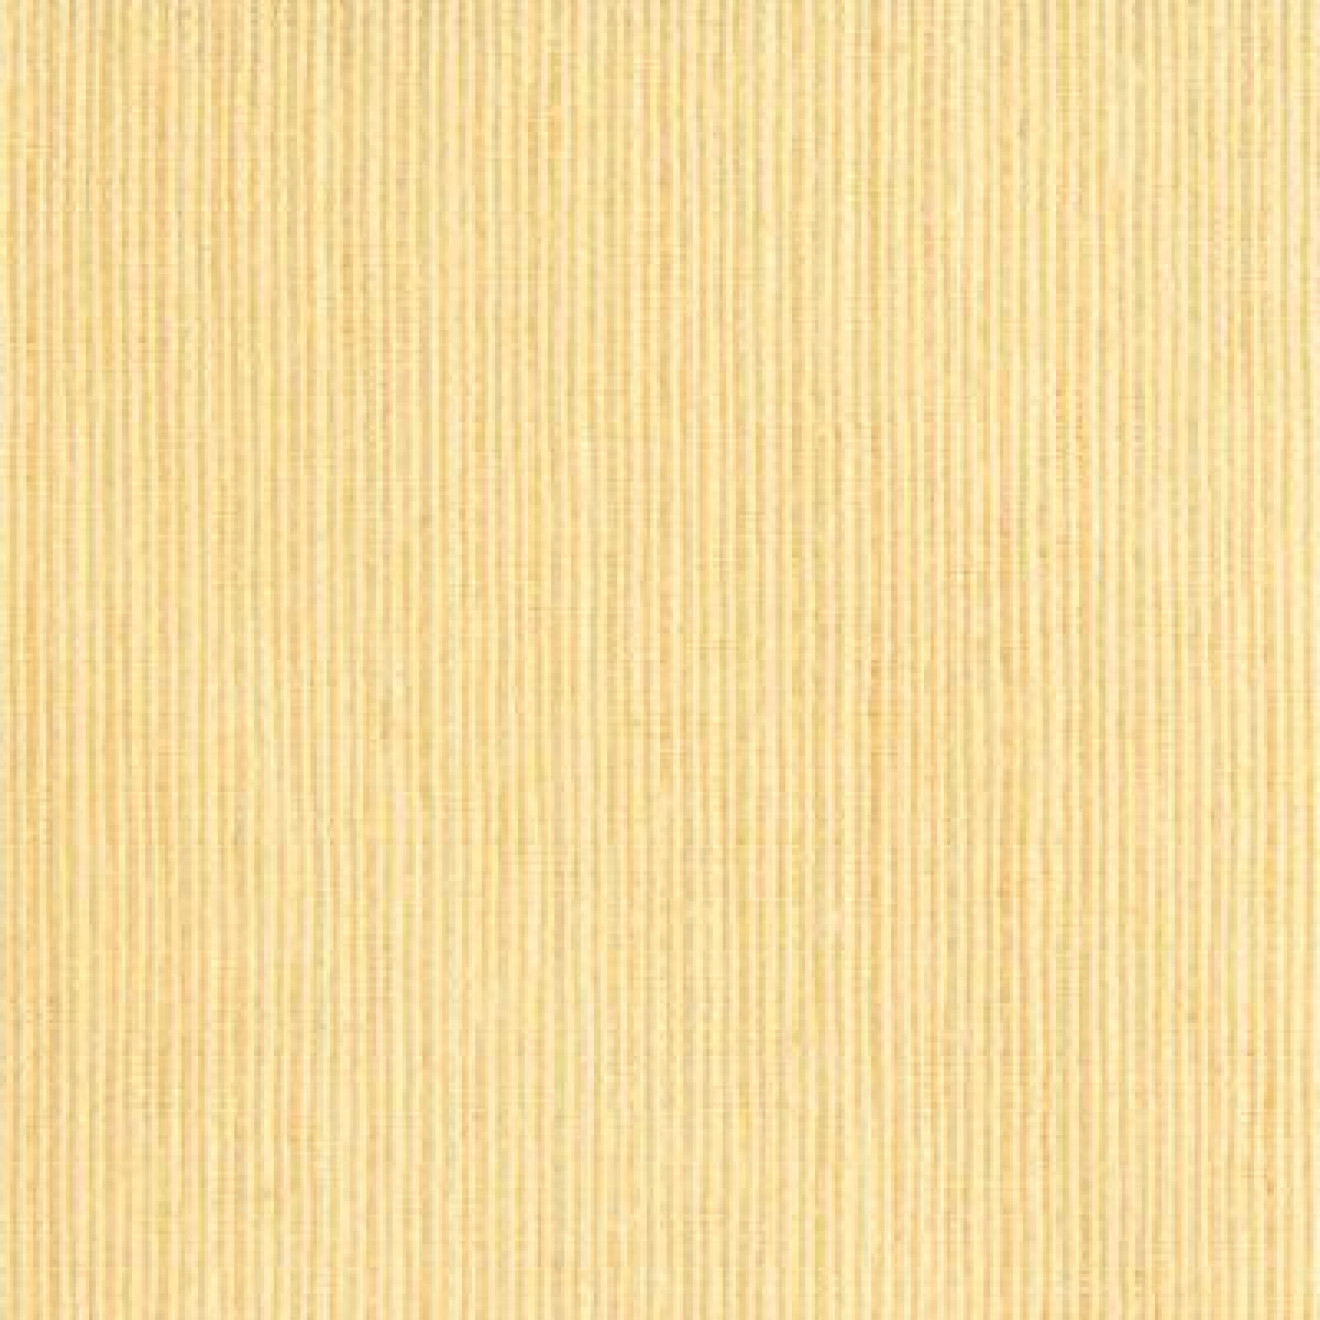 Dreieck - Acrylstoff Loneta Color 111